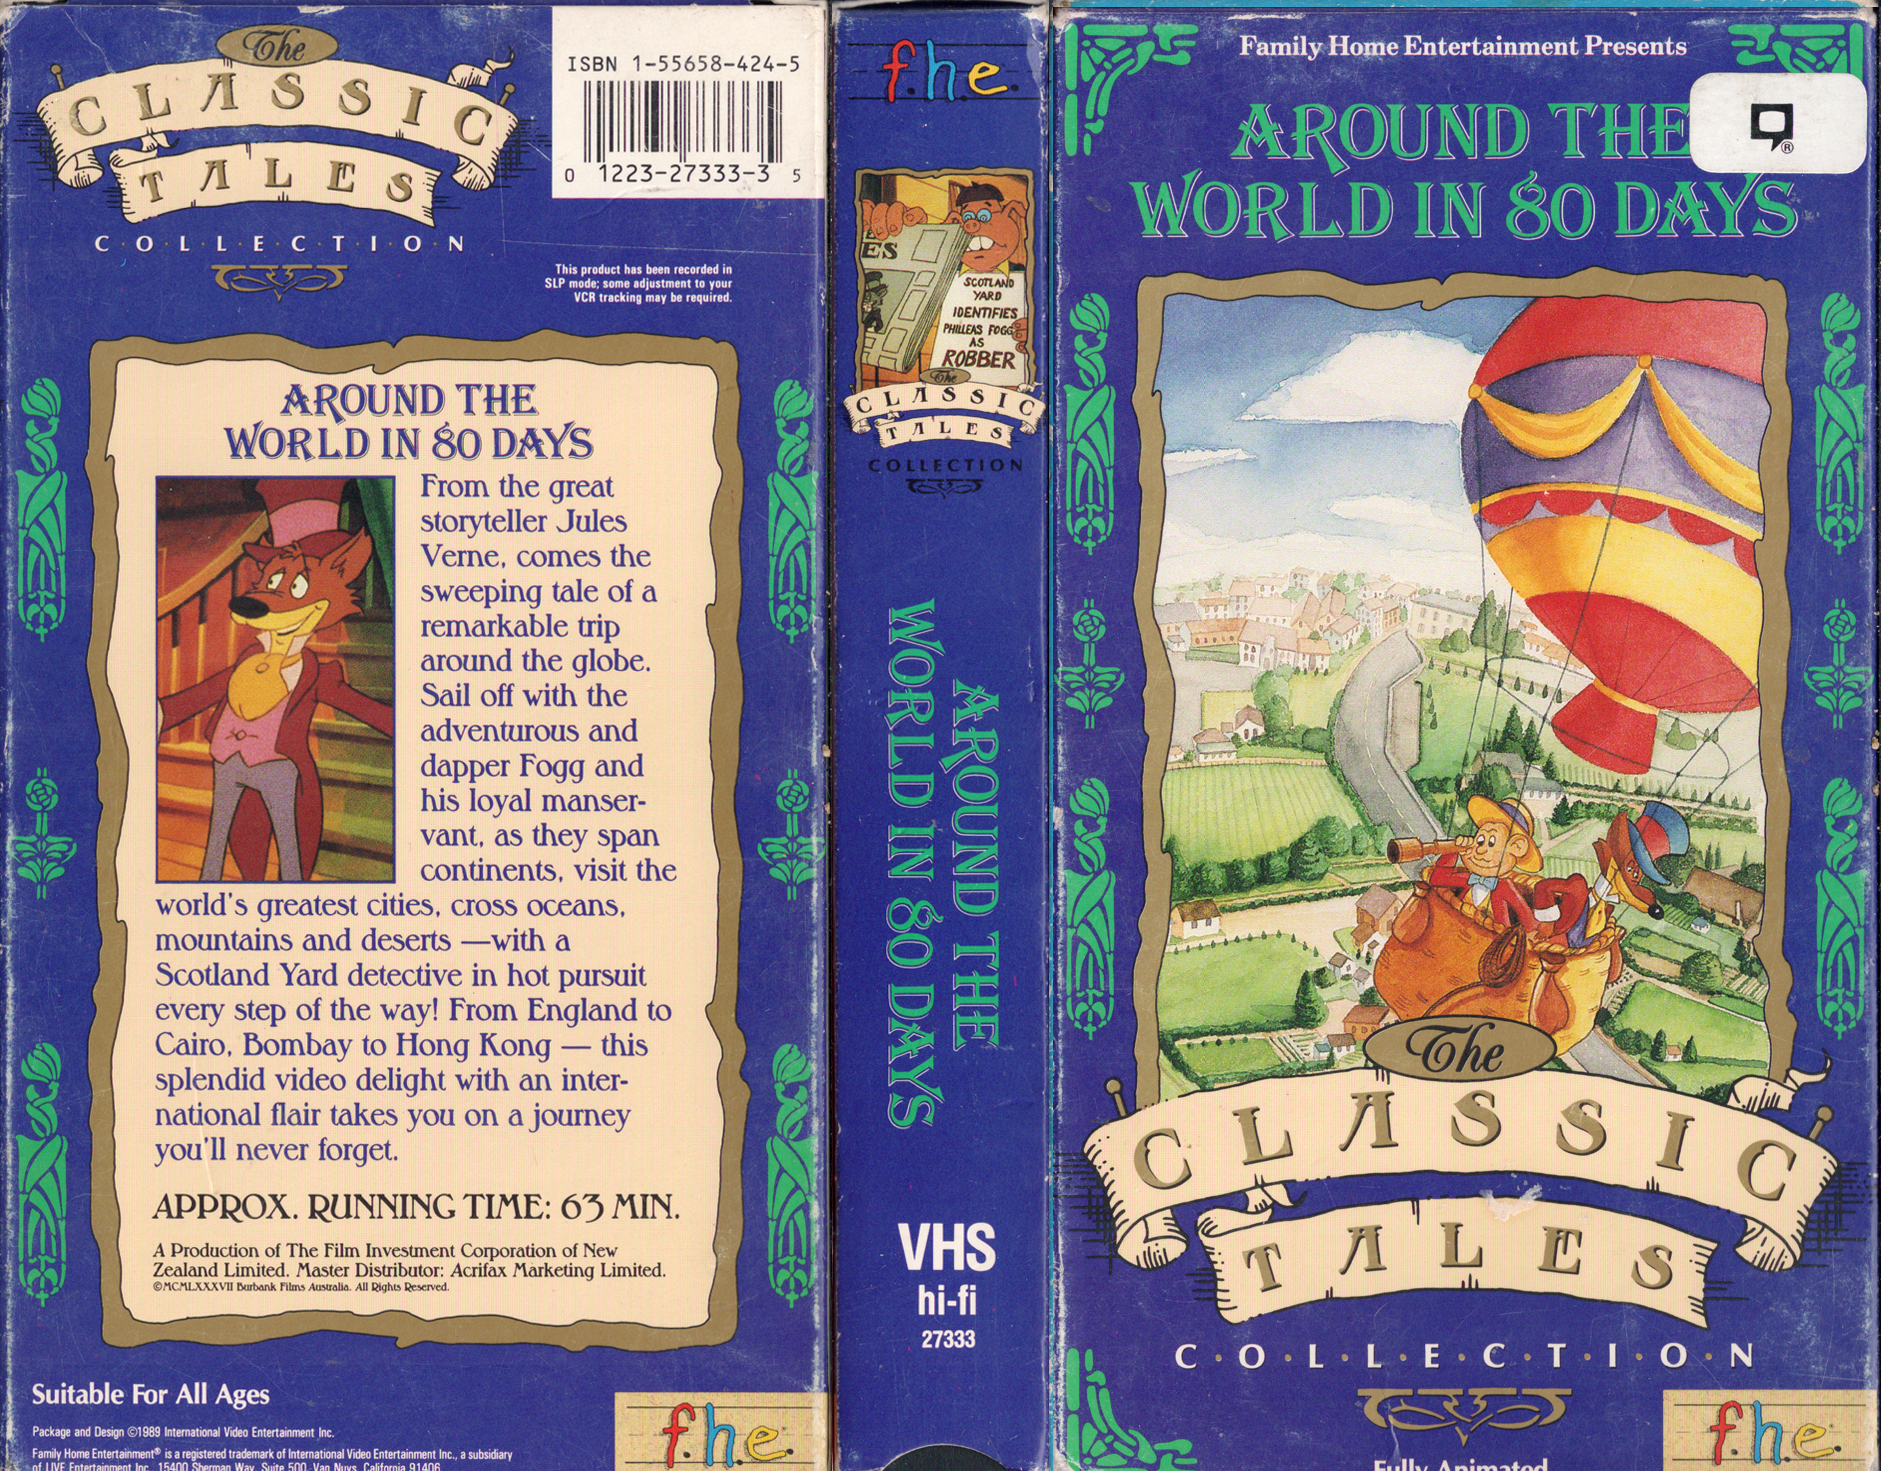 AROUND-THE-WORLD-IN-80-DAYS-CARTOON-CLASSIC-TALES-COLLECTION-FAMILY ...